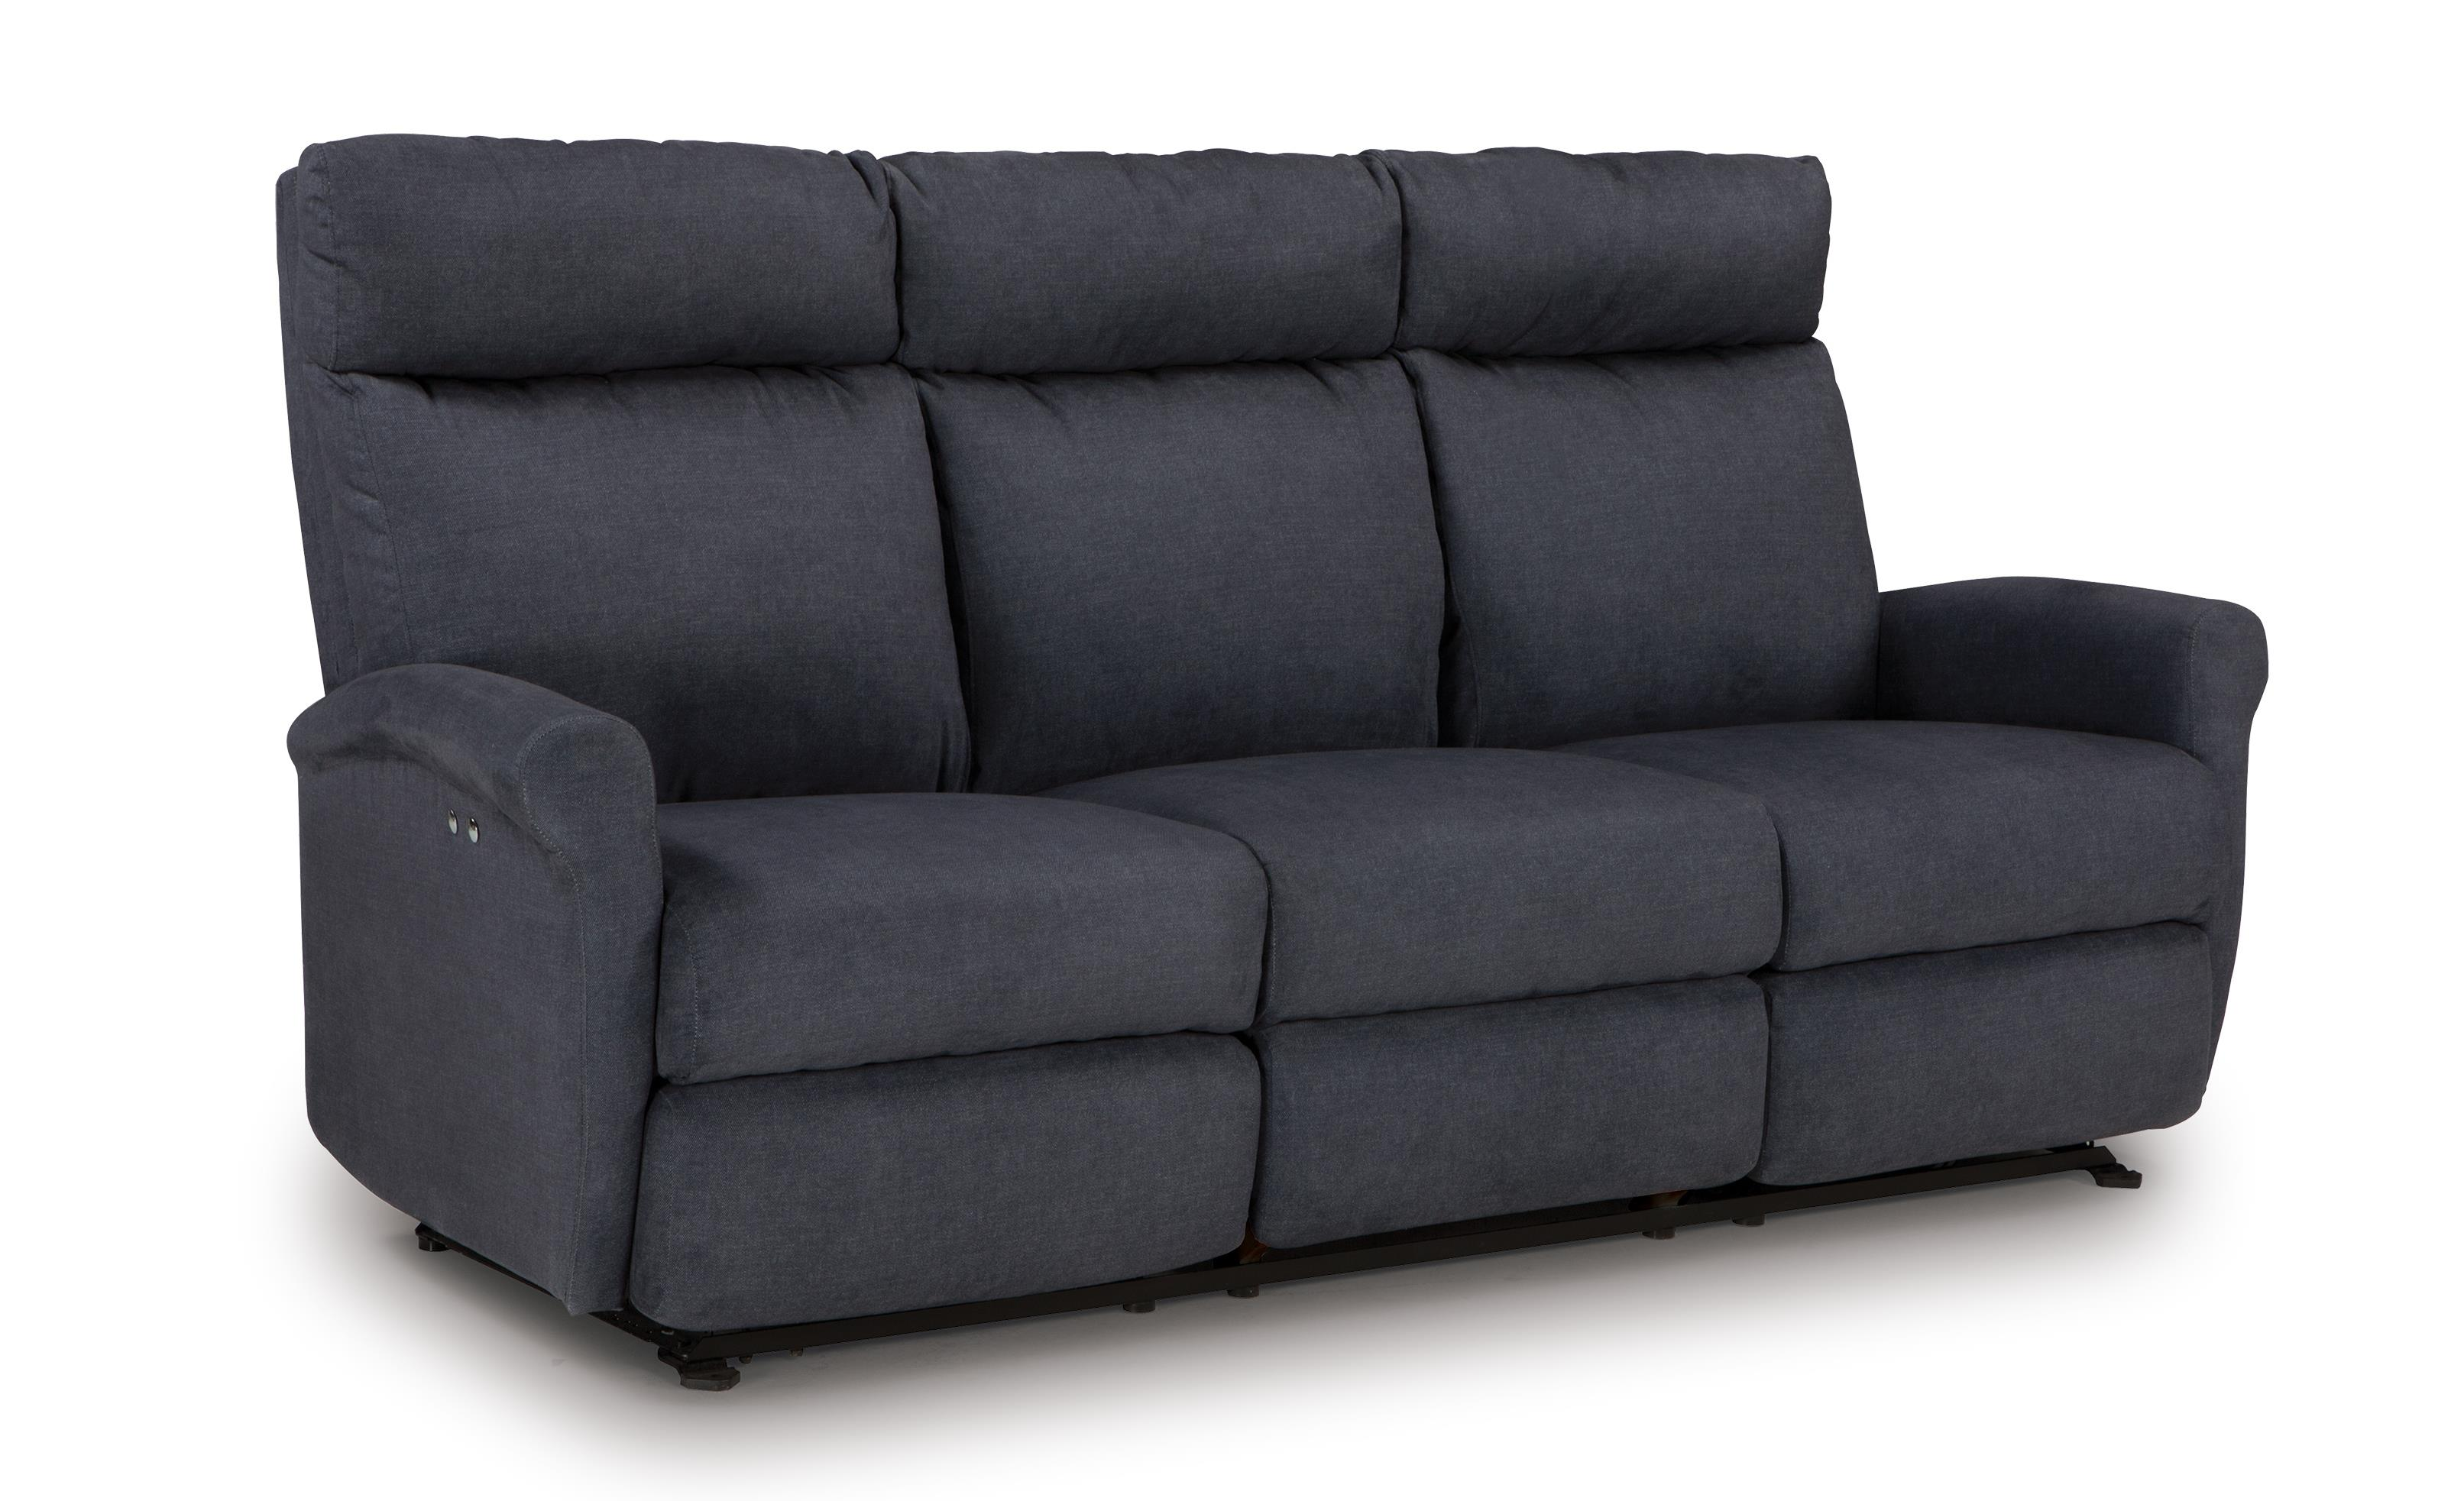 Best Home Furnishings Codie Power Reclining Sofa - Item Number: S100RP4-21472